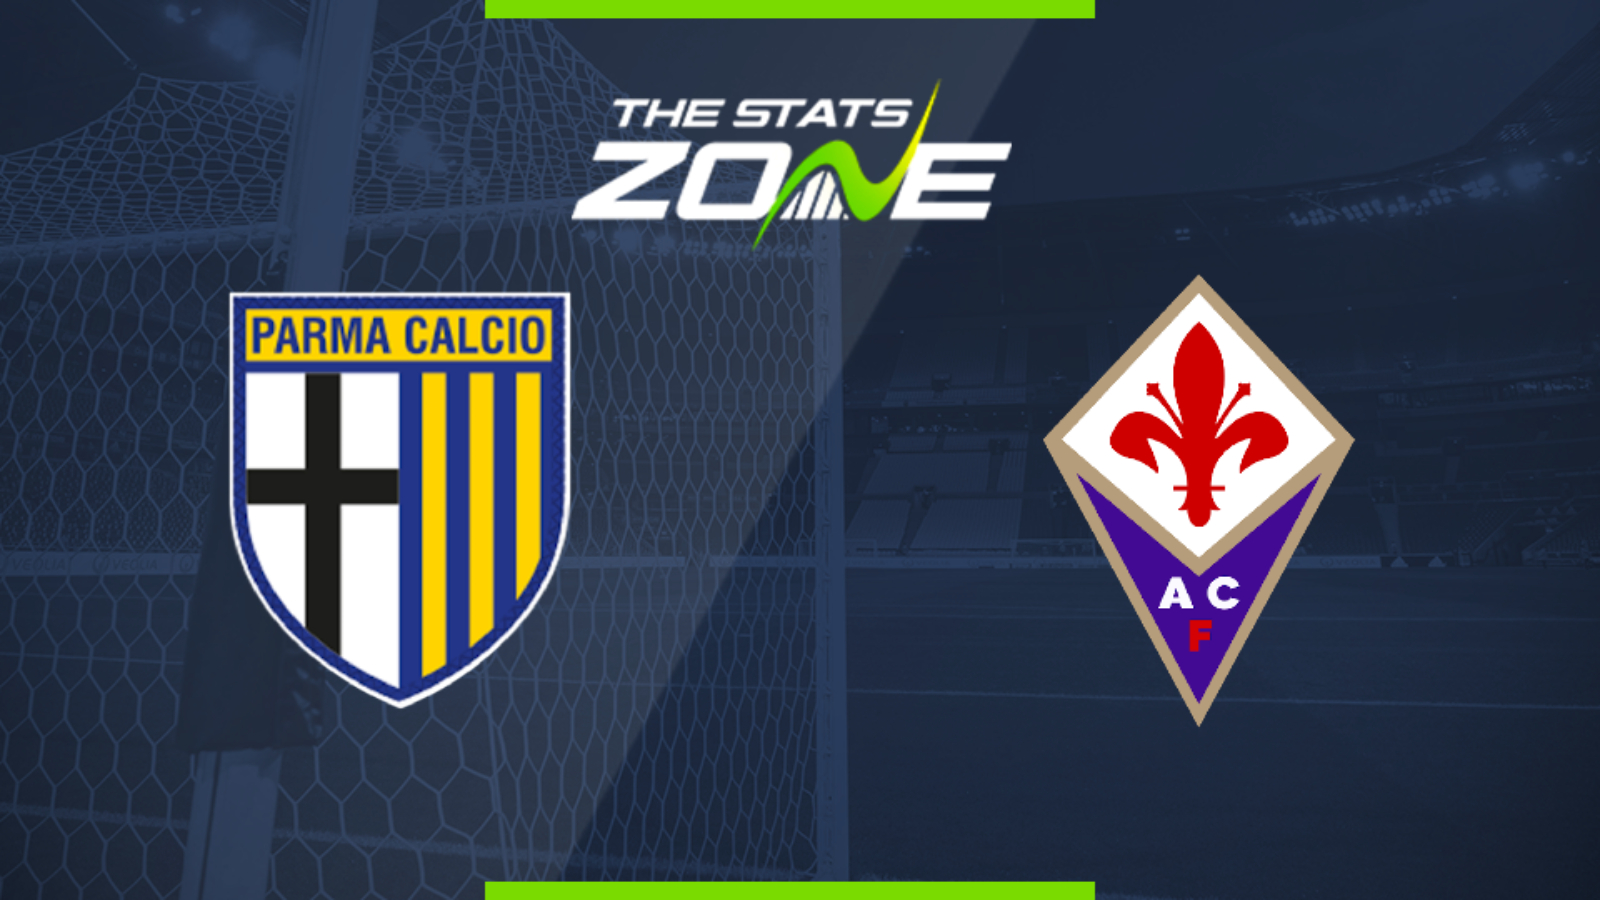 Parma v fiorentina betting tips betting advice for nfl week 16